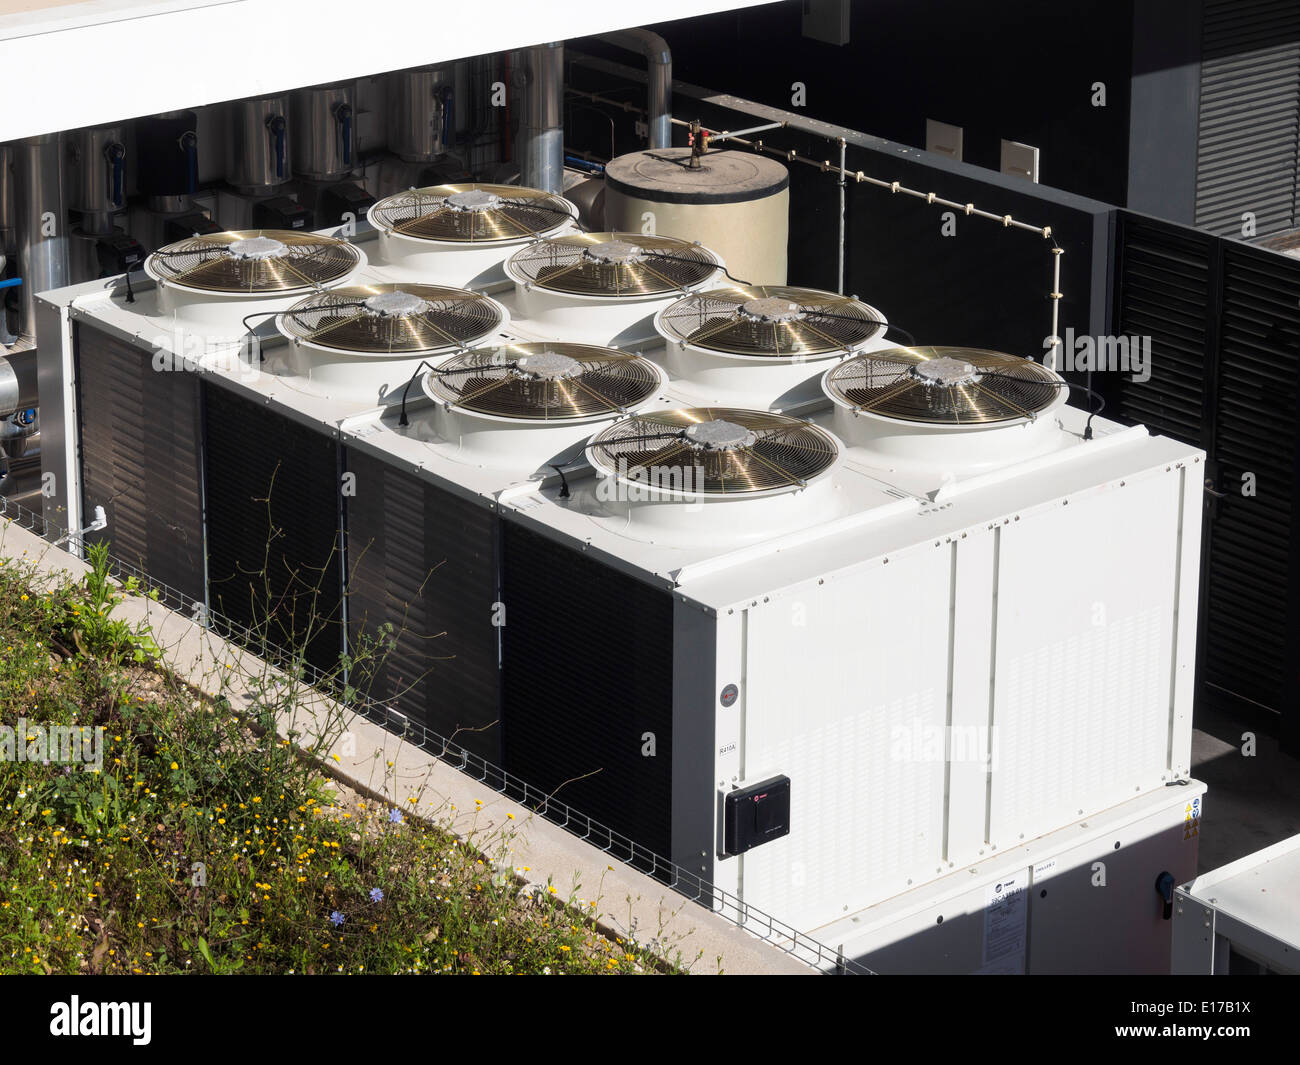 Large industrial air conditioning units on a building rooftop - Stock Image